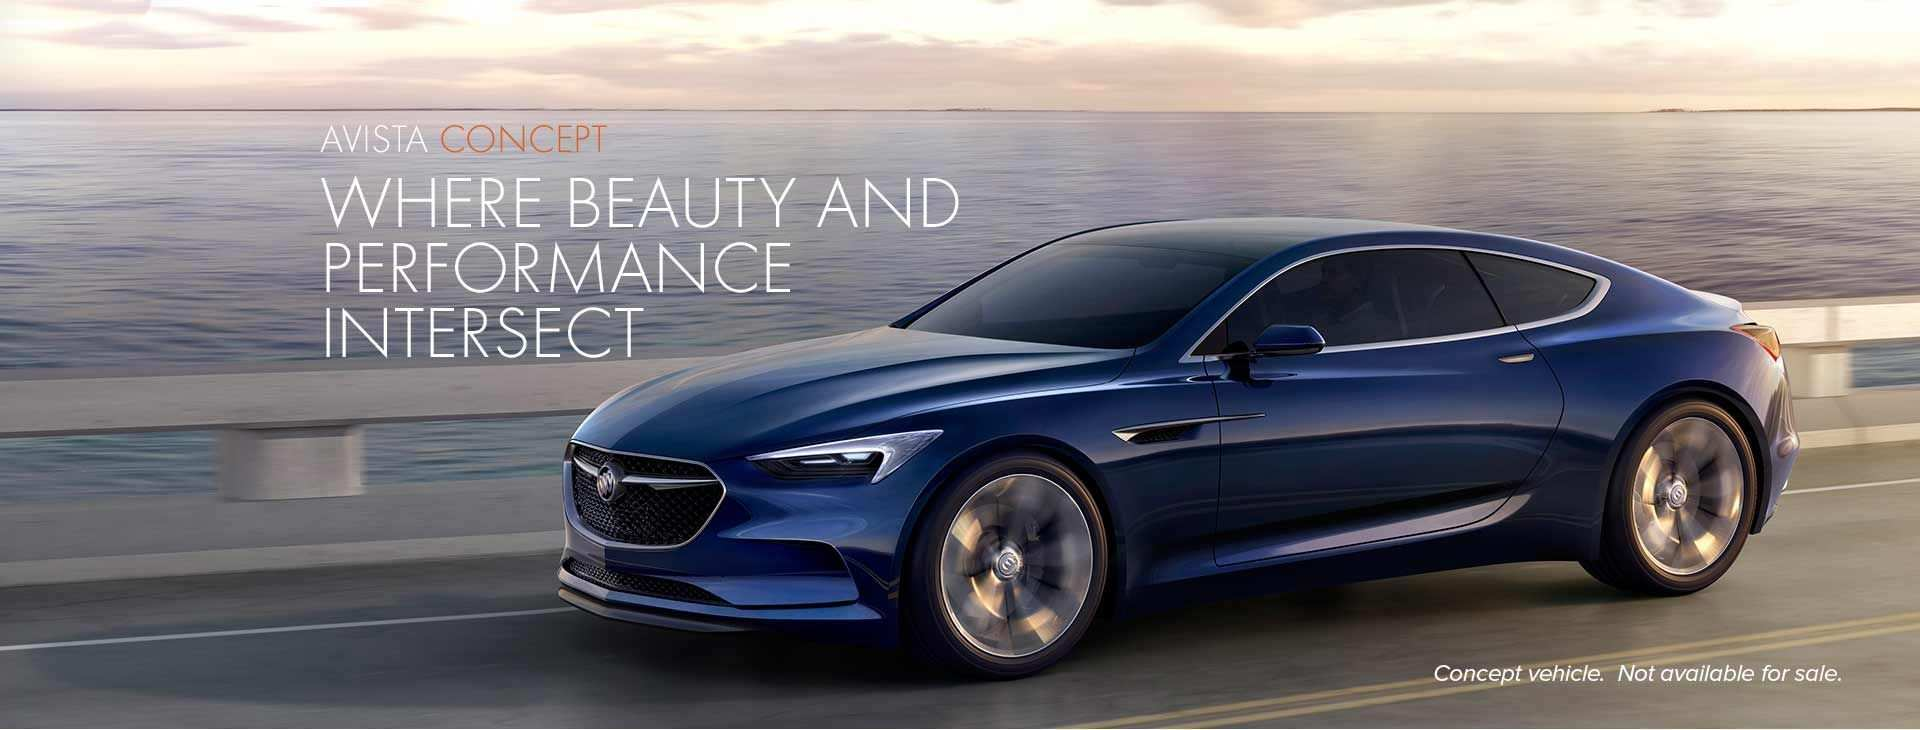 92 The Buick Concept Cars 2019 Picture Release Date And Review Performance and New Engine with Buick Concept Cars 2019 Picture Release Date And Review